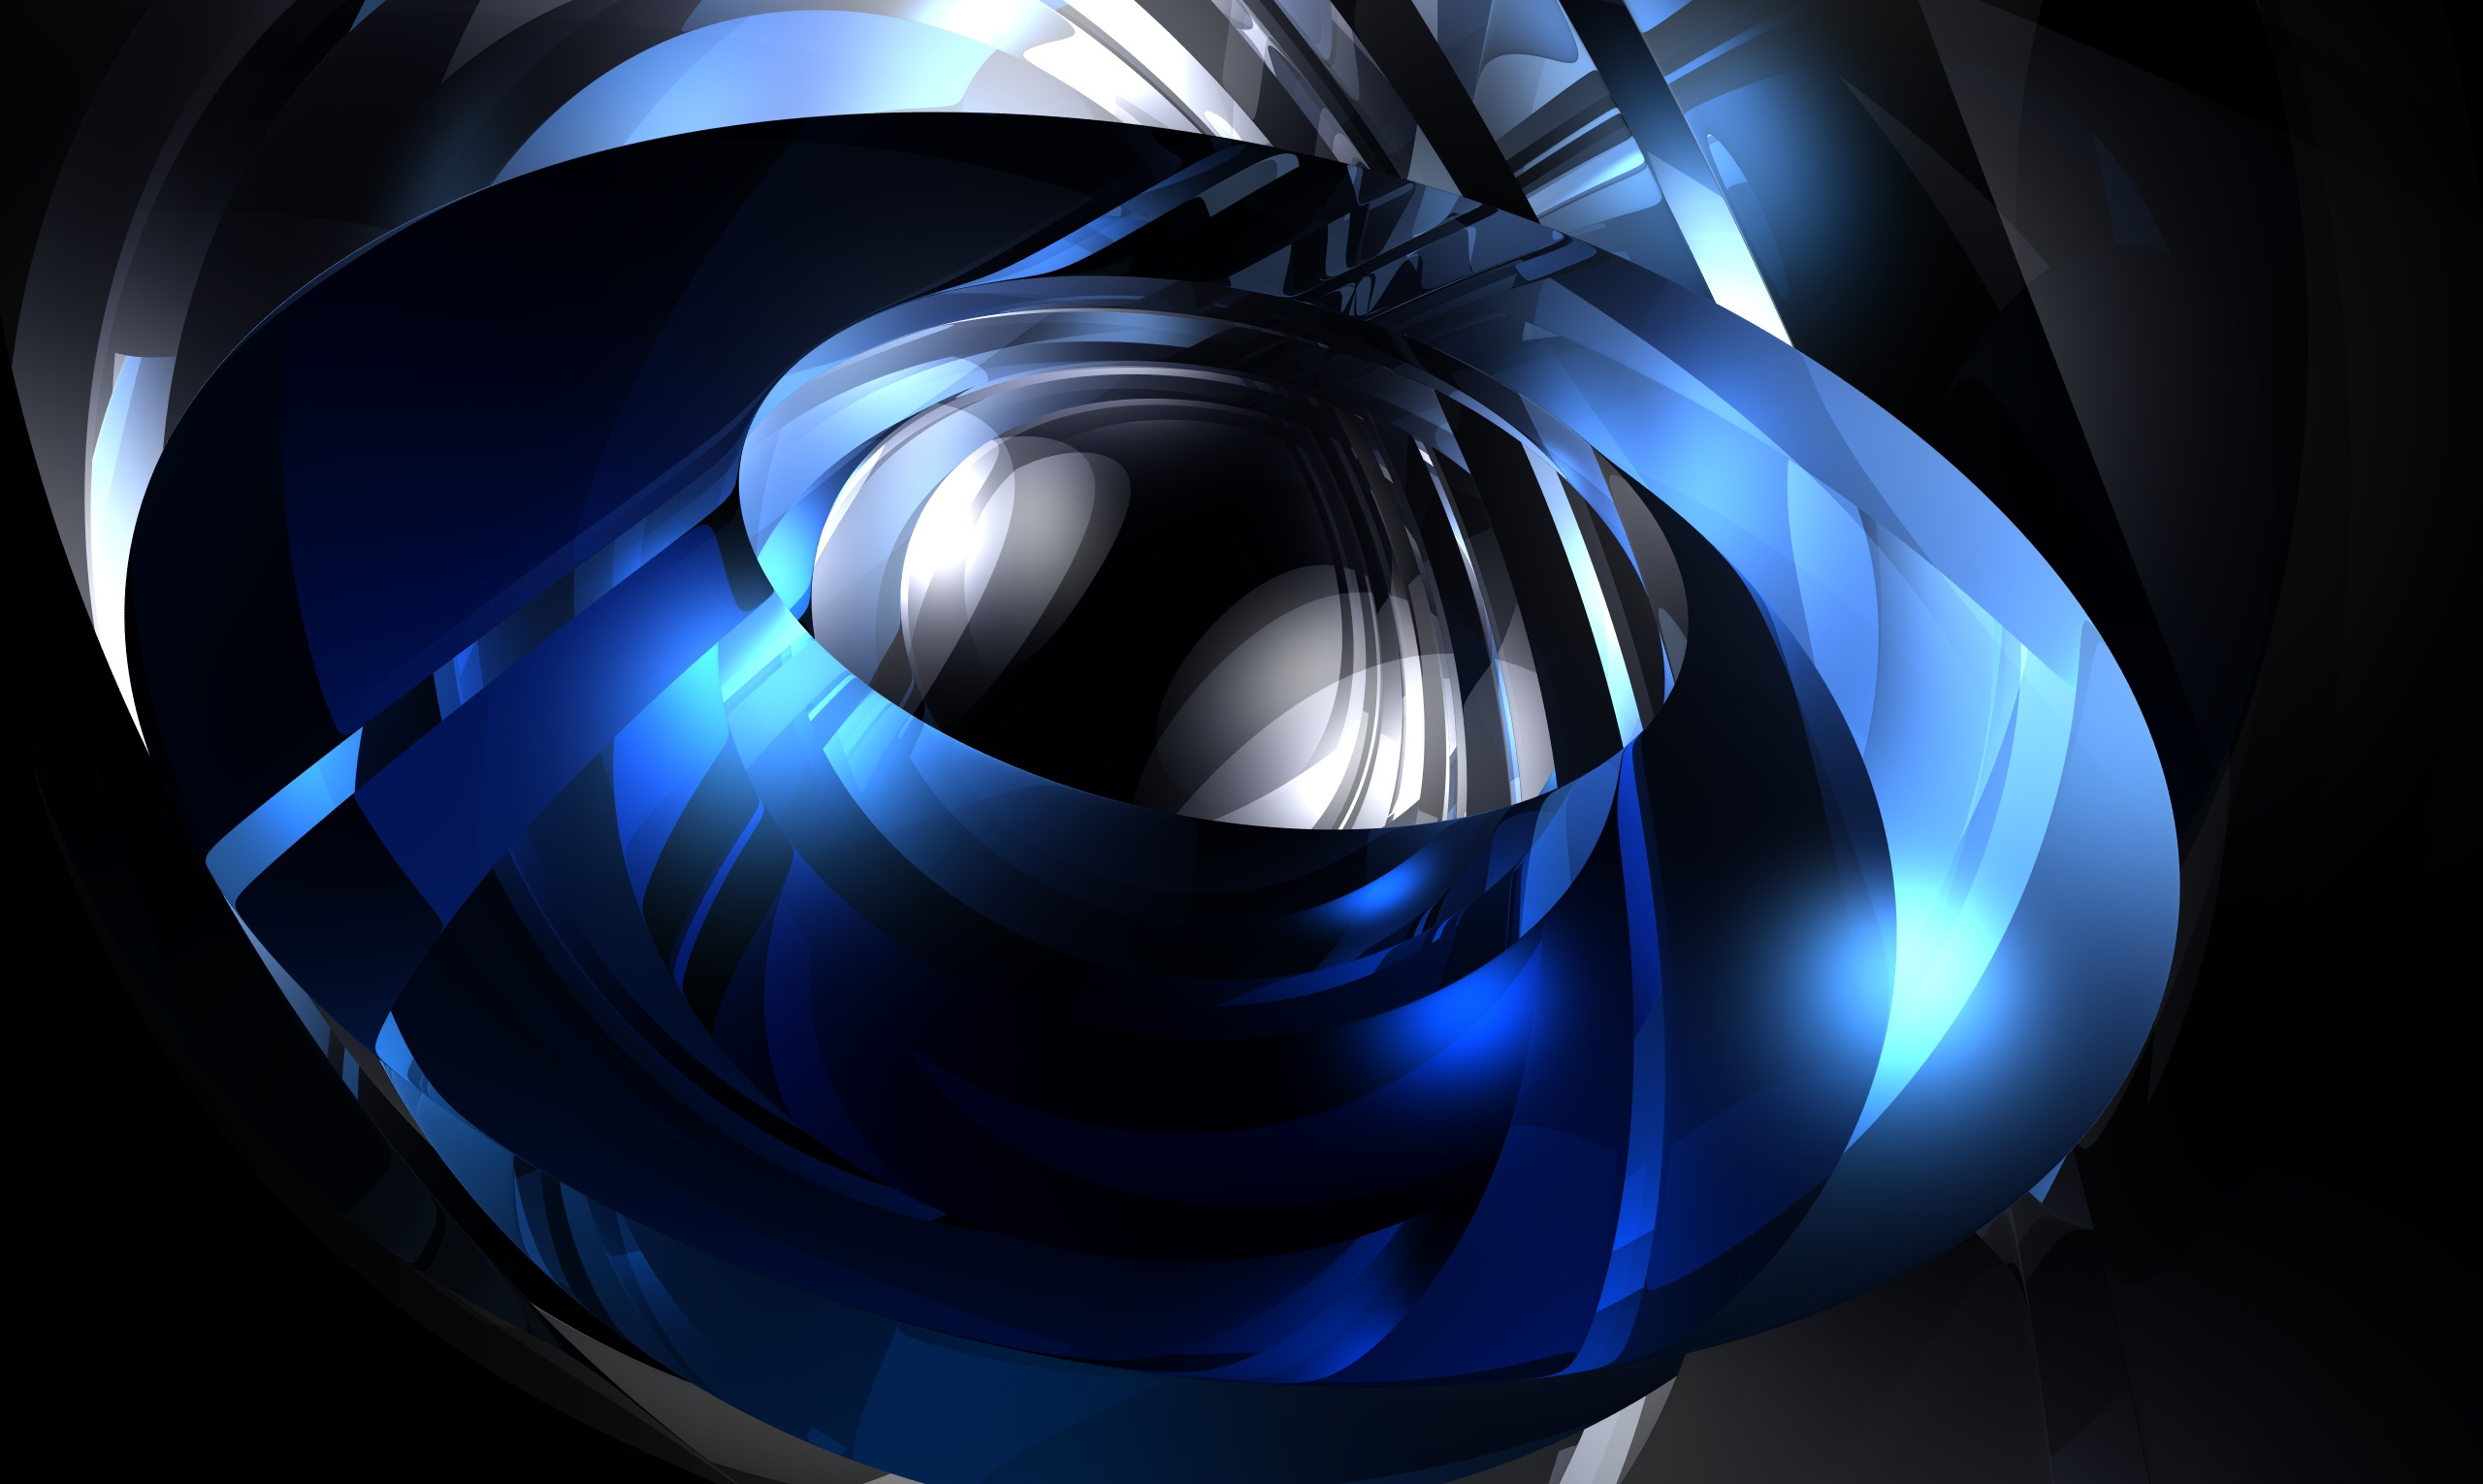 Abstract - Digital Art  Wallpaper